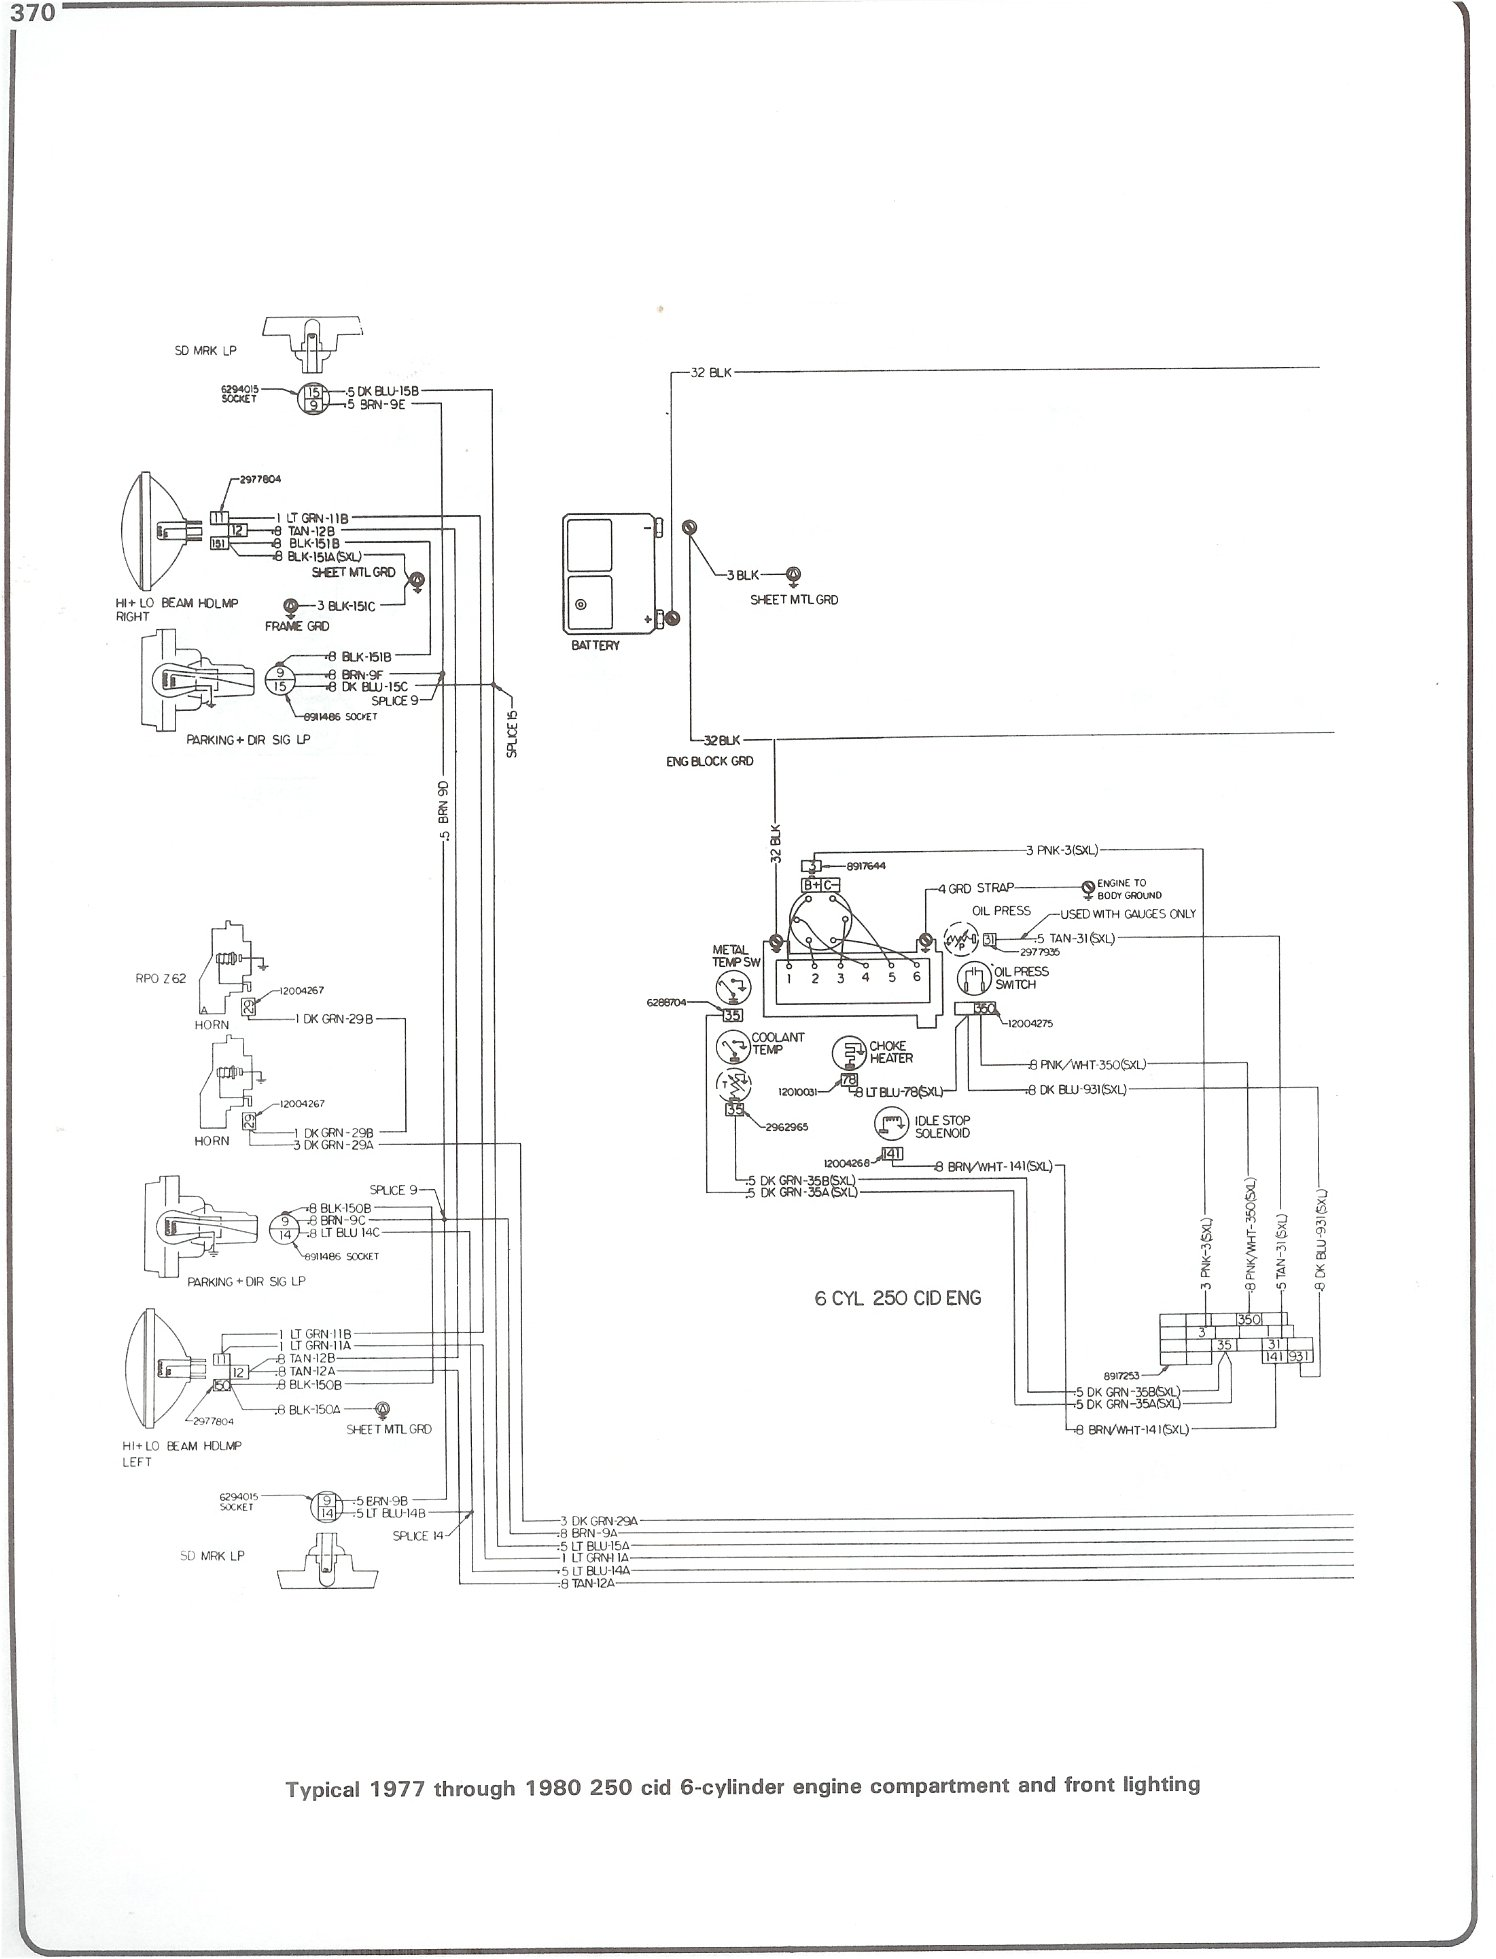 Complete 73 87 Wiring Diagrams 1985 Mustang Turn Signal Diagram 77 80 250 I6 Engine And Front Lighting